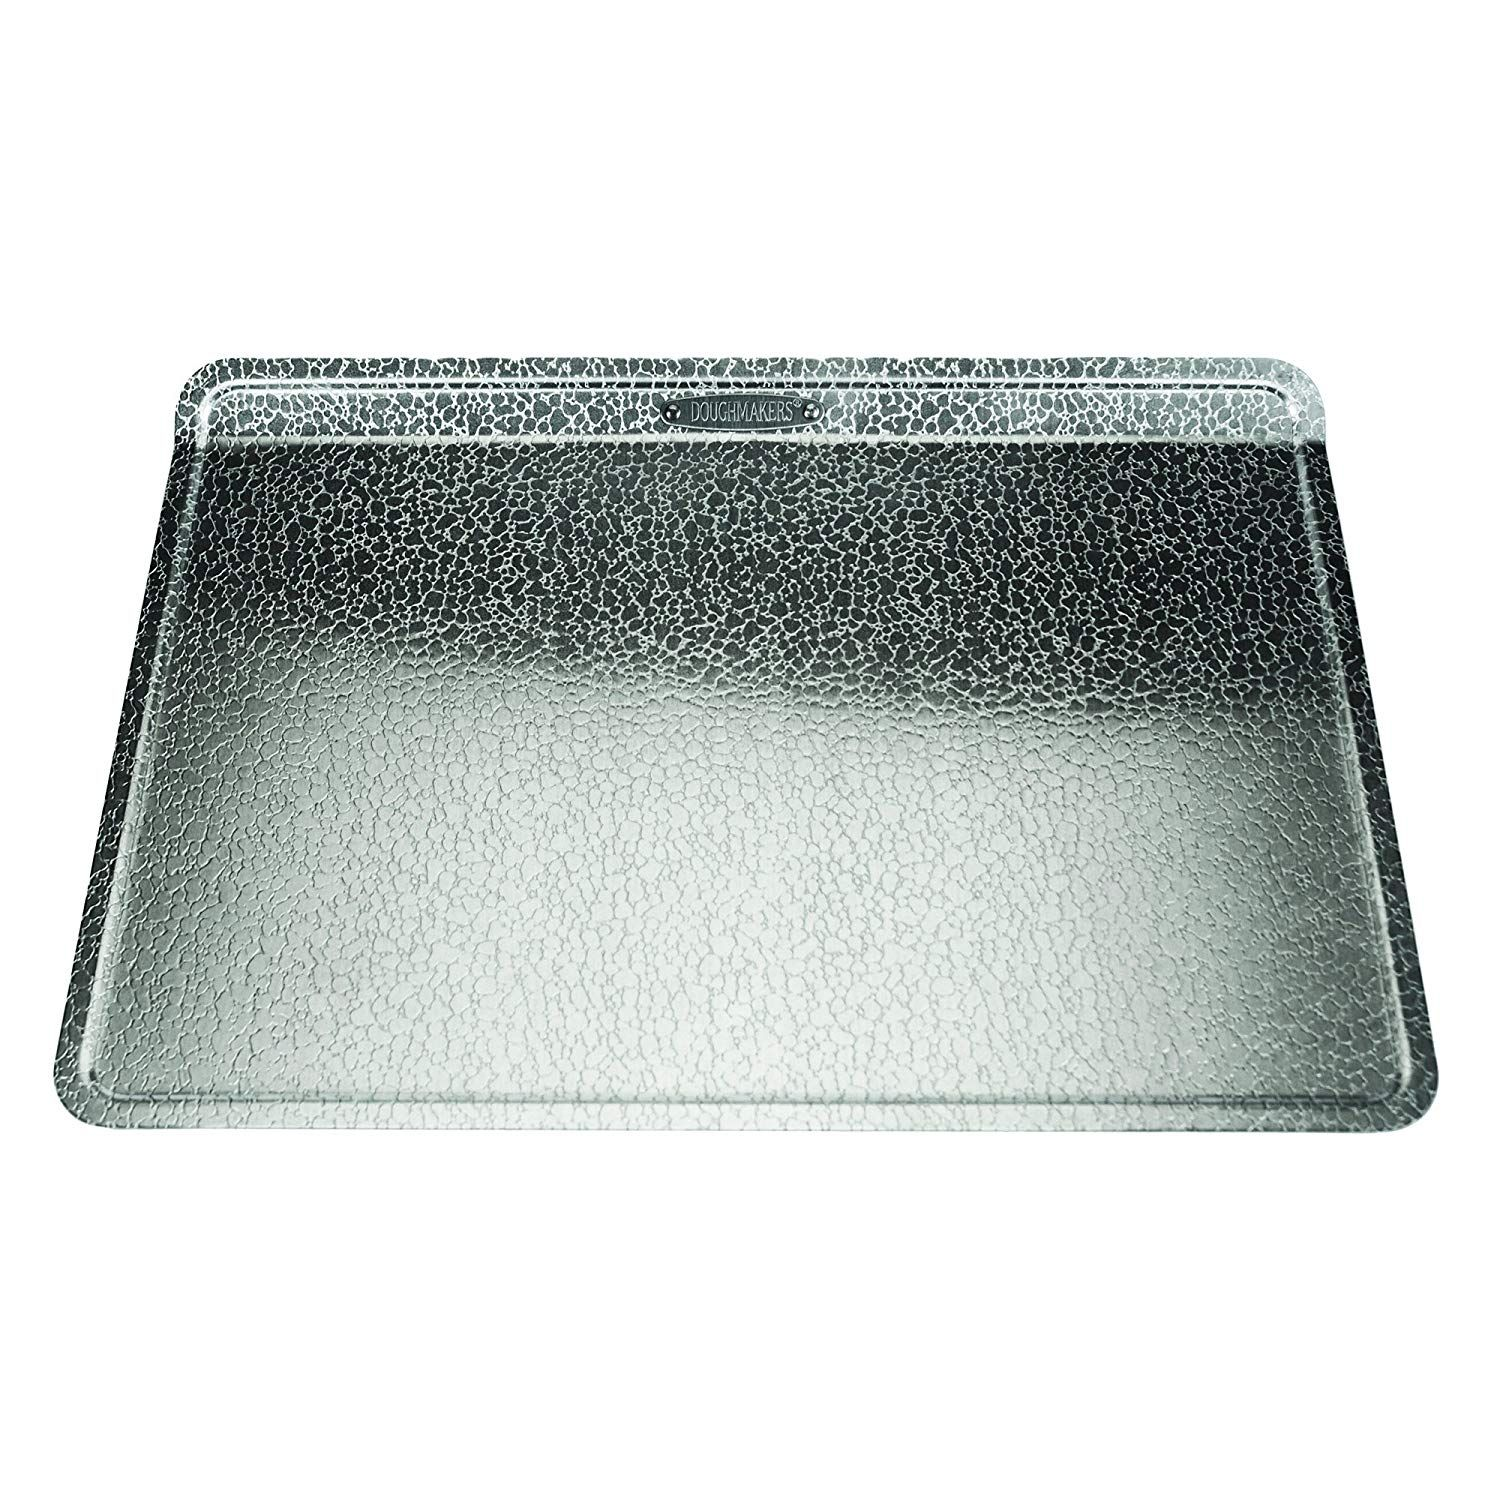 Doughmakers 10031 Biscuit Sheet Commercial Grade Aluminum Bake Pan 10 X 14 To View Further For This Item Visit The Image Cookie Sheet Baking Pans Sheet